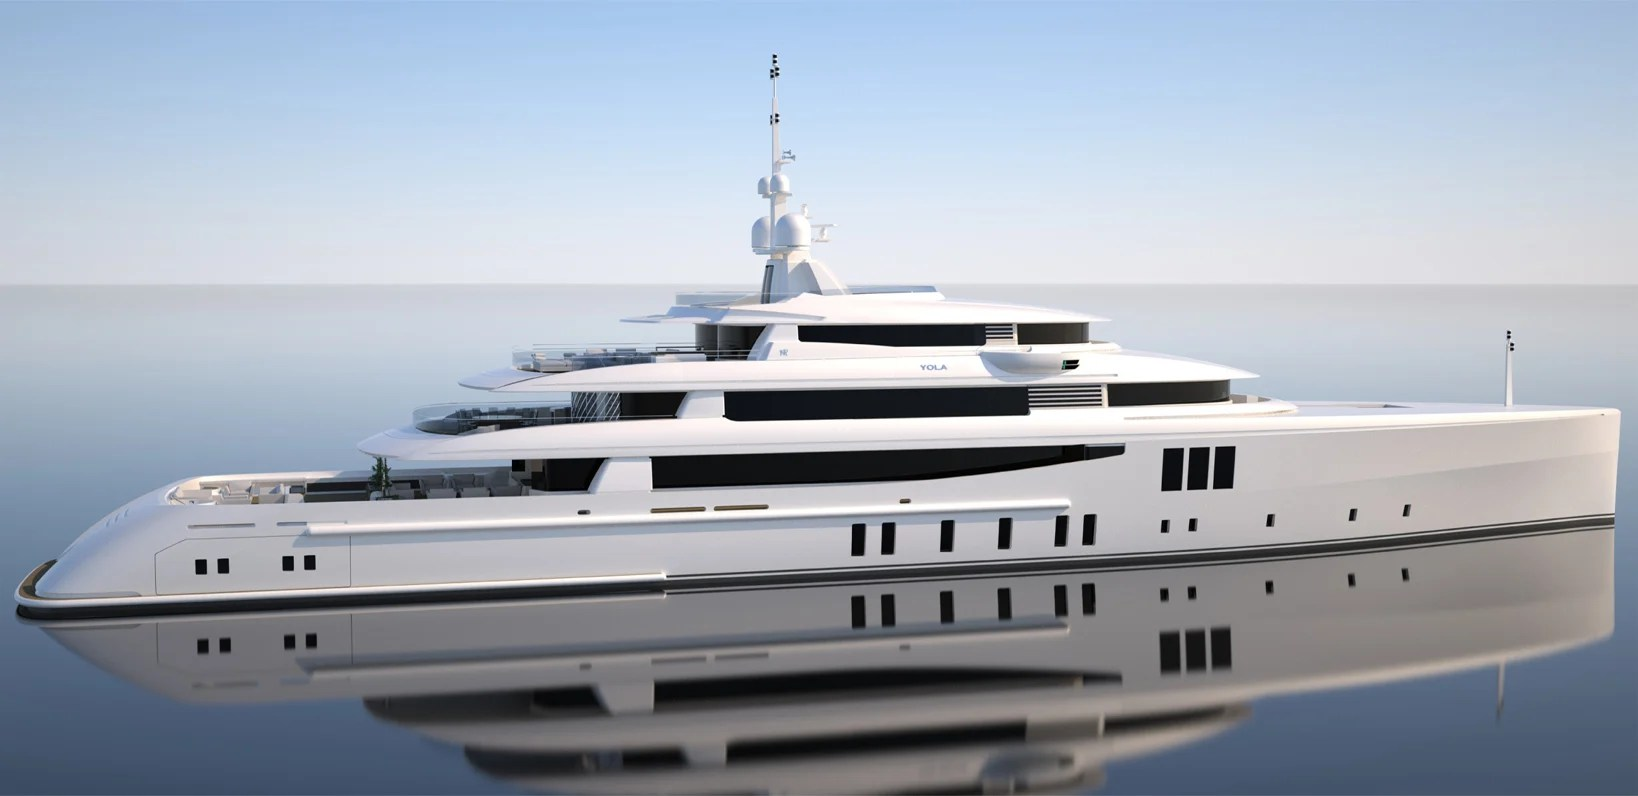 5 Upcoming Futuristic Yachts That Billionaires Across The World Are Excited For